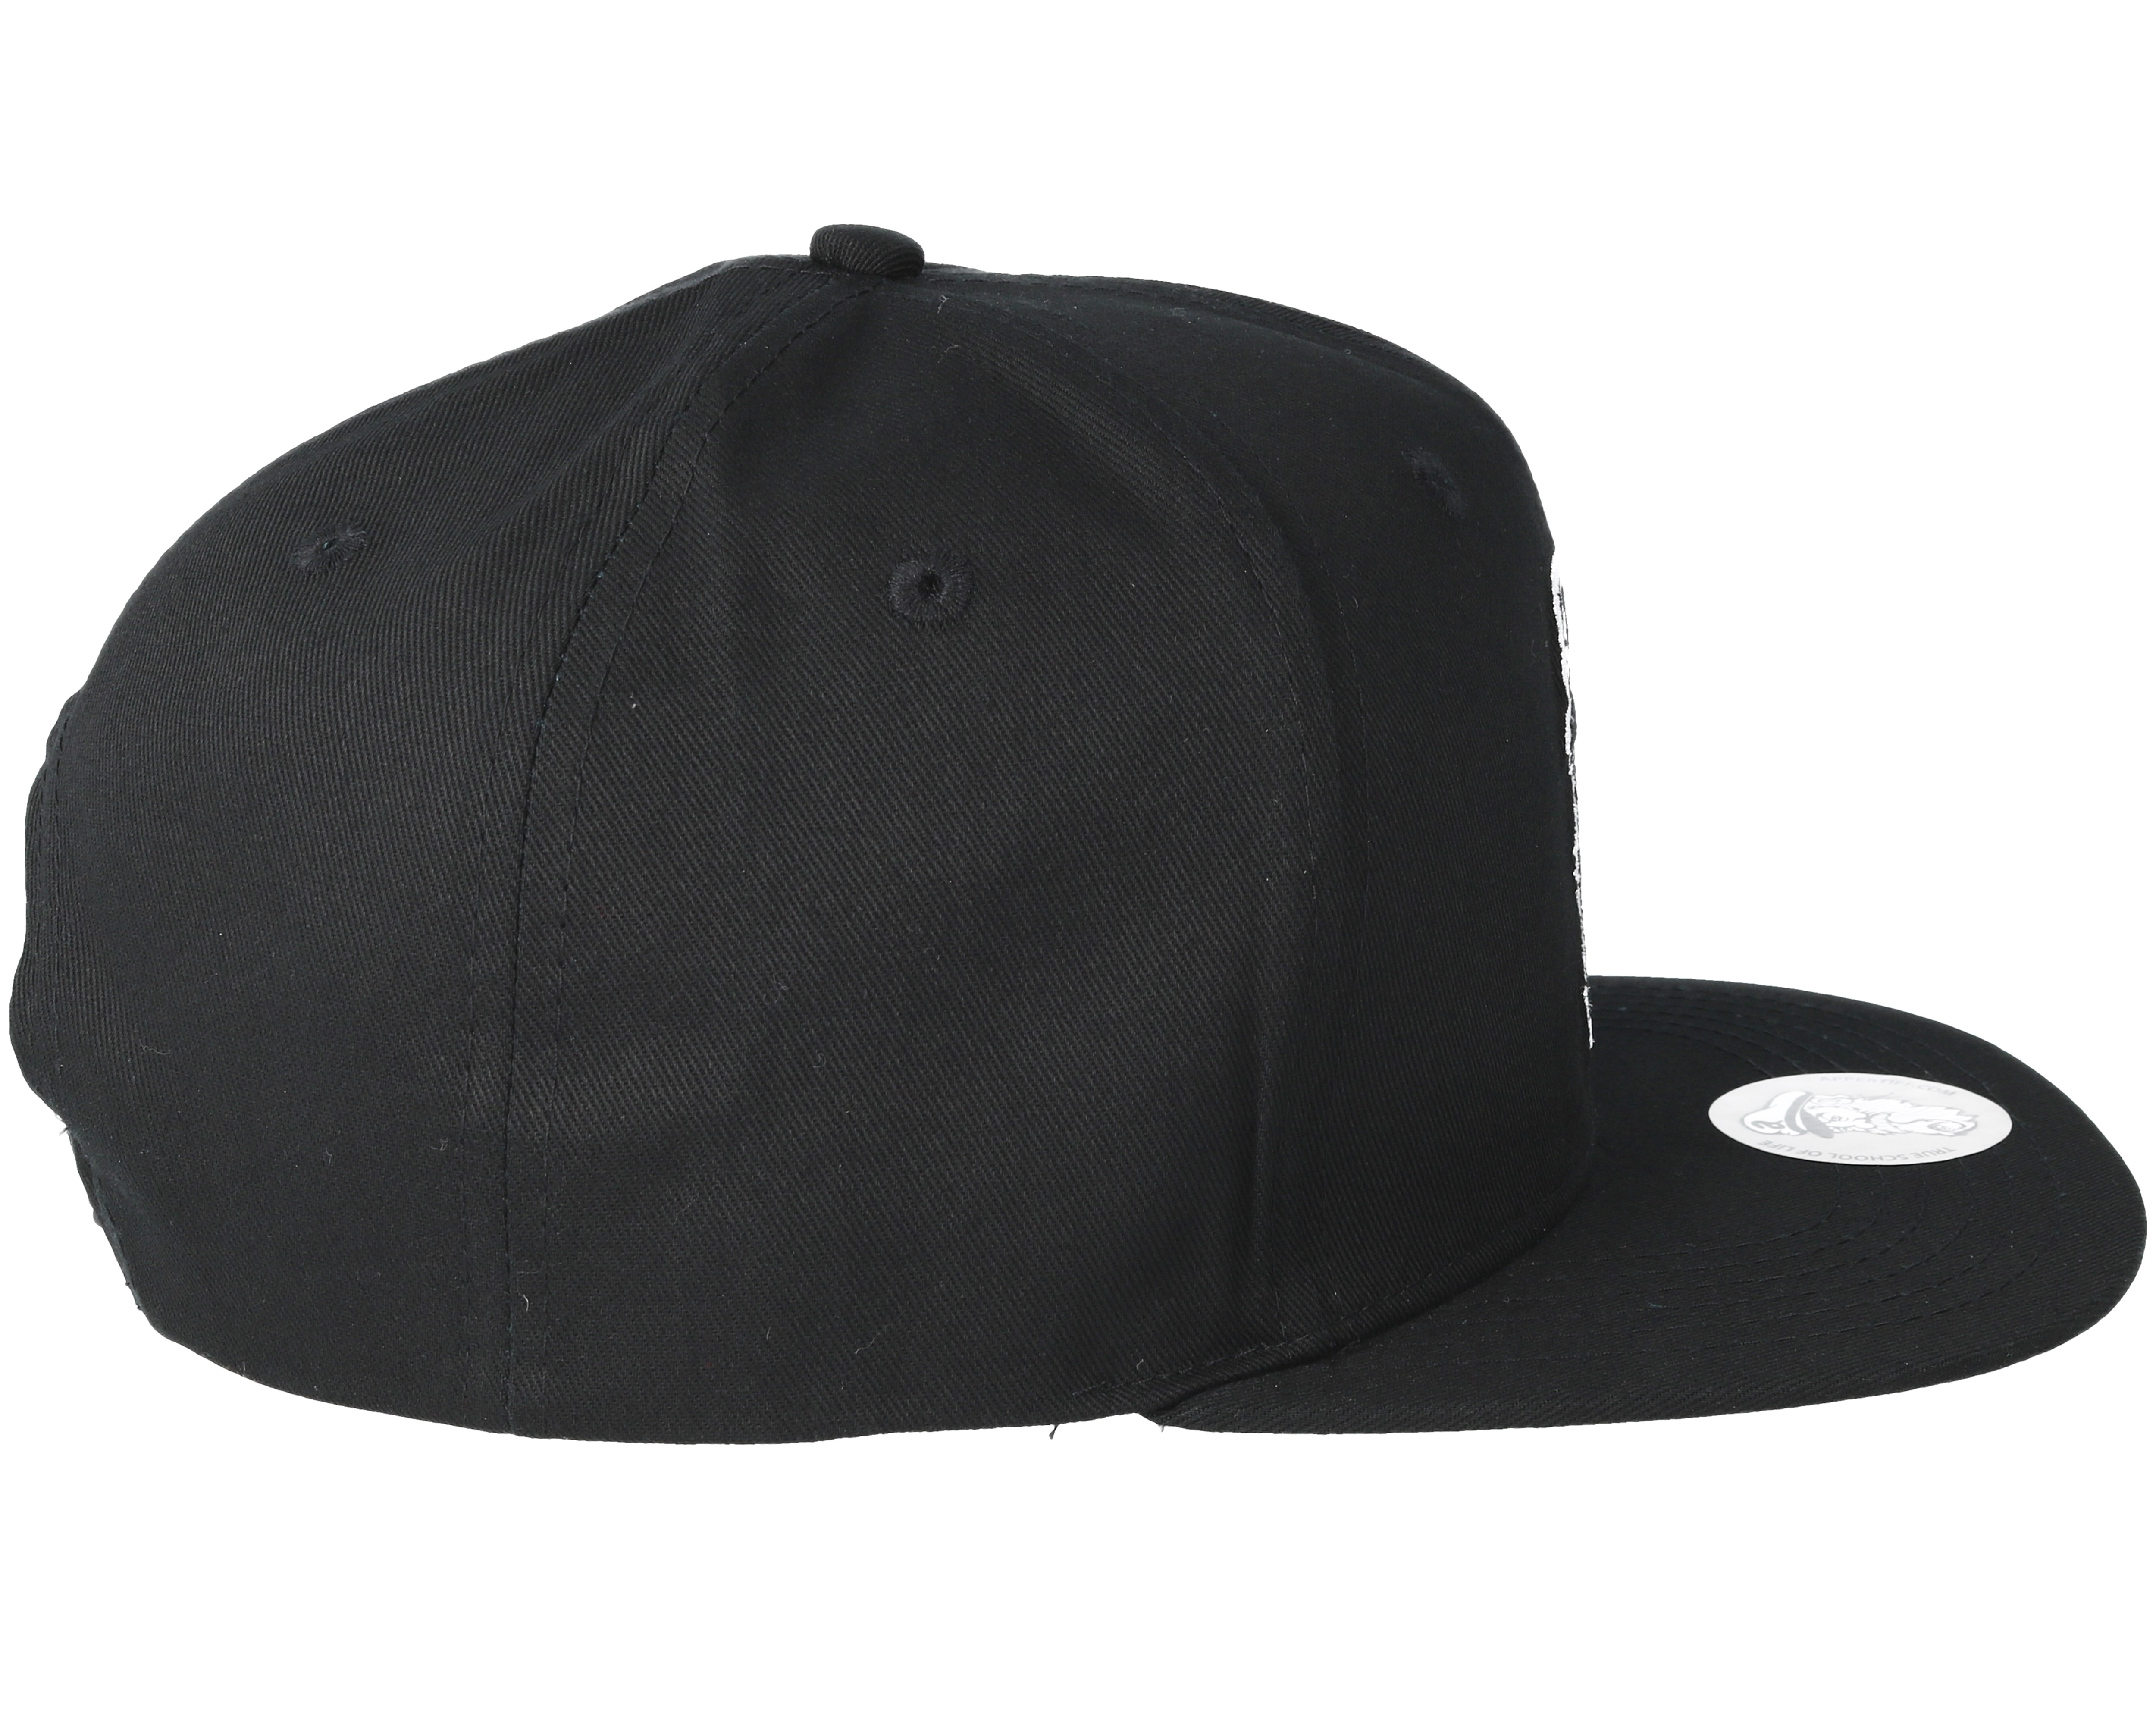 White foam front and snapback adjustable strap, fits boys and girls 3 Keep 66 Skull-Chef Cooking Skull Hat Grill Master Unisex Style Strapback Hat. by Keep $ - $ $ 1 $ 11 45 Prime. FREE Shipping on eligible orders. Some sizes/colors are Prime eligible. out of 5 stars